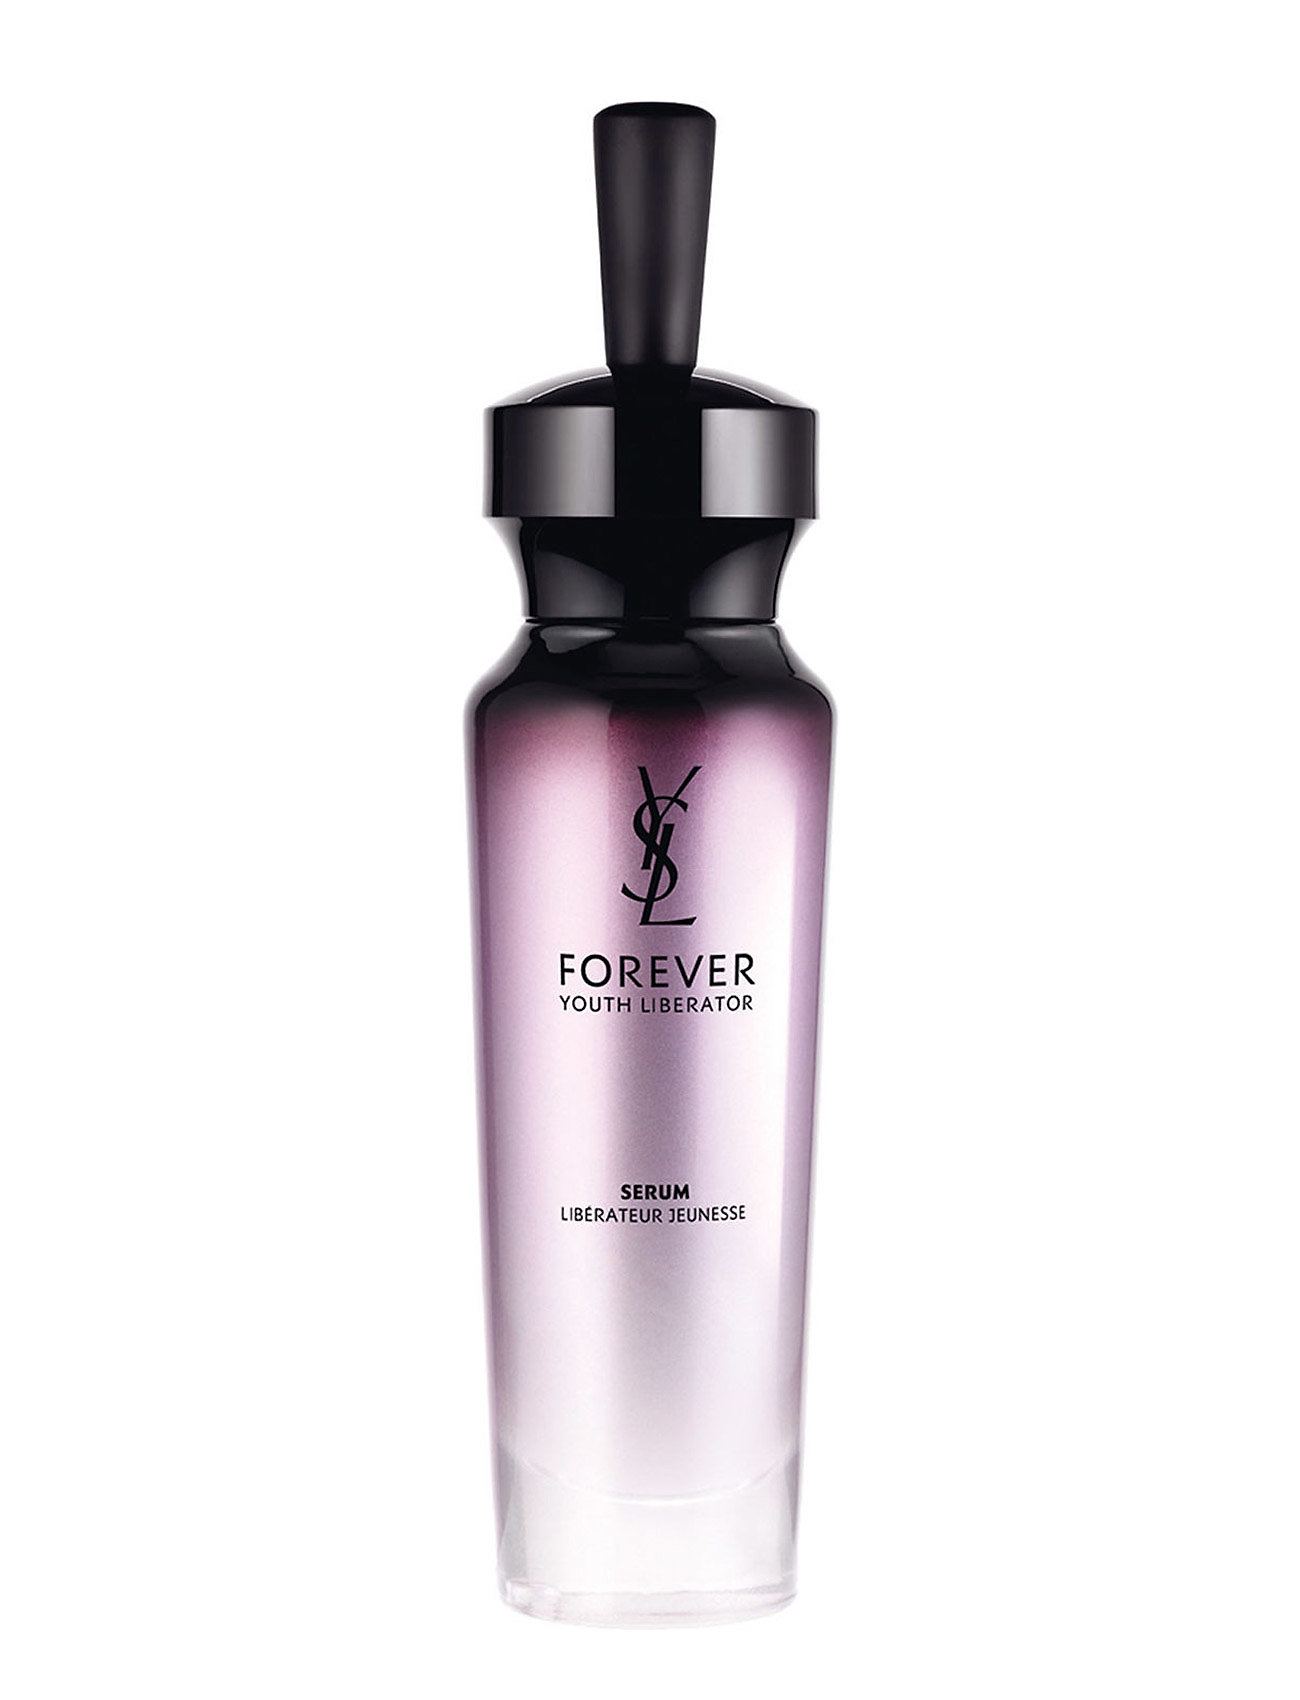 Forever youth liberator serum 50 ml. fra yves saint laurent på boozt.com dk